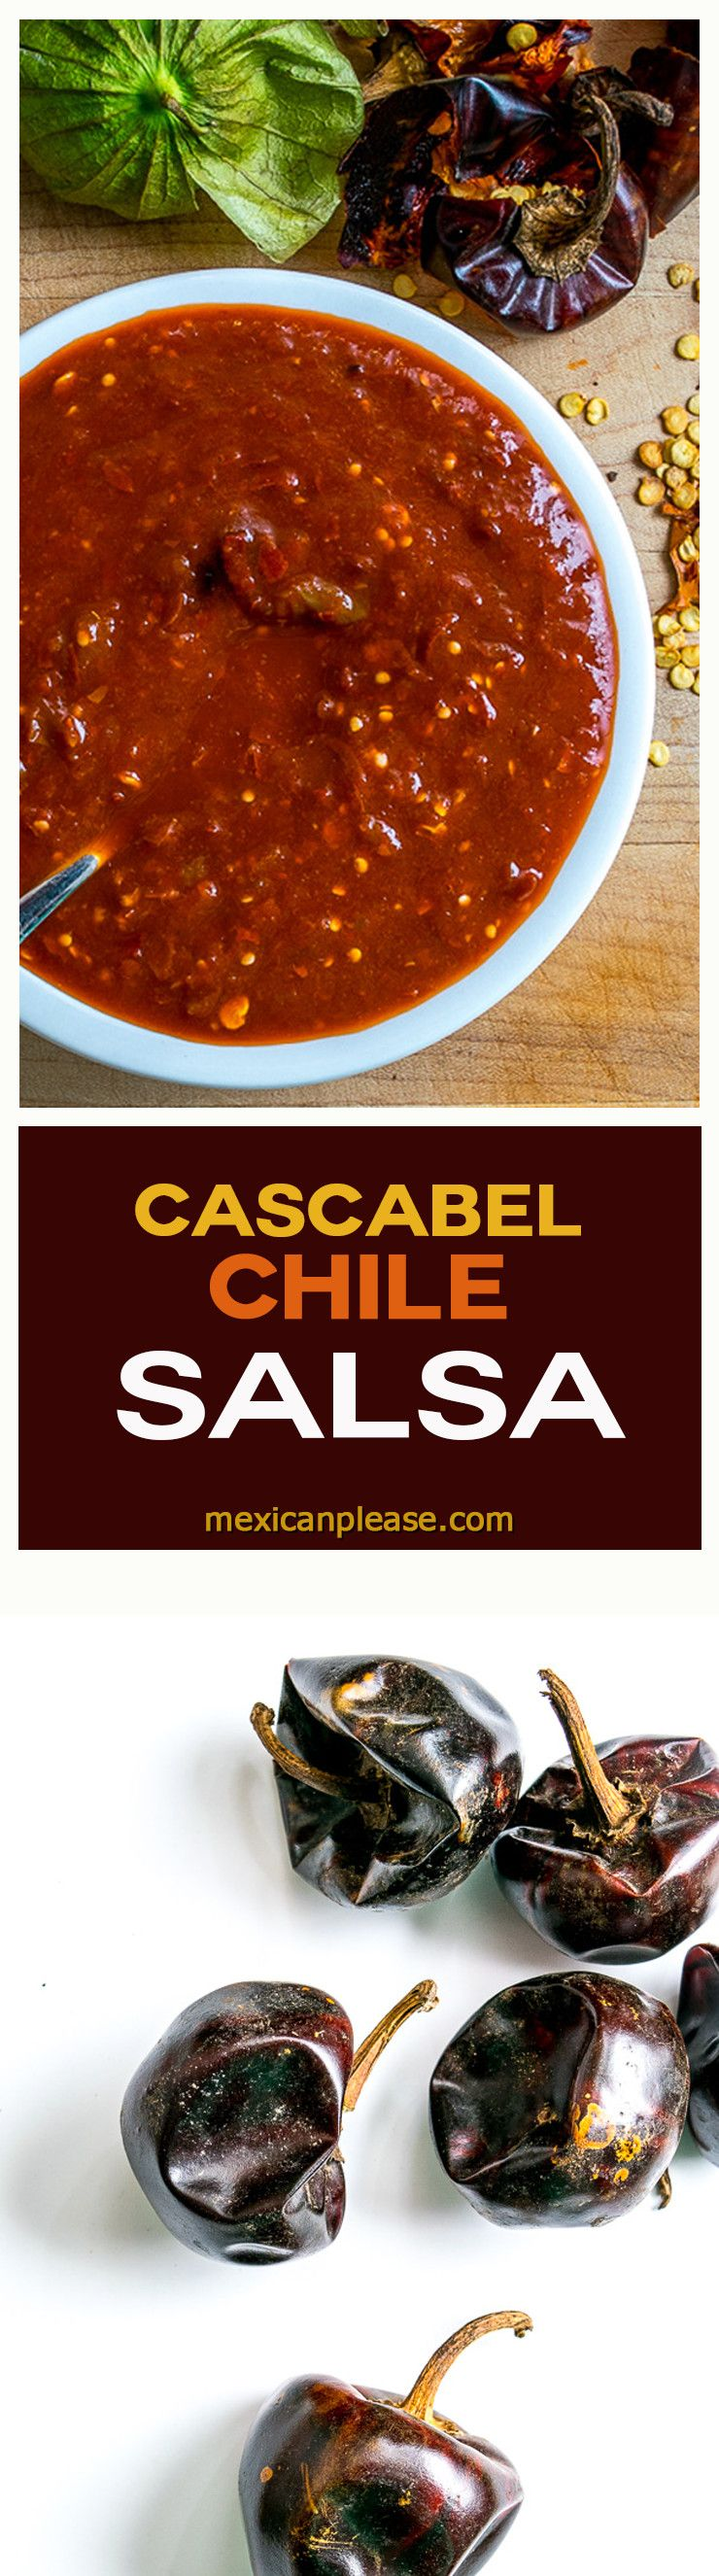 This Cascabel Chile Salsa limits the other ingredients so that the Cascabels can shine! It's worth trying if you've never used Cascabels before.  So good!  mexicanplease.com #authenticmexicansalsa